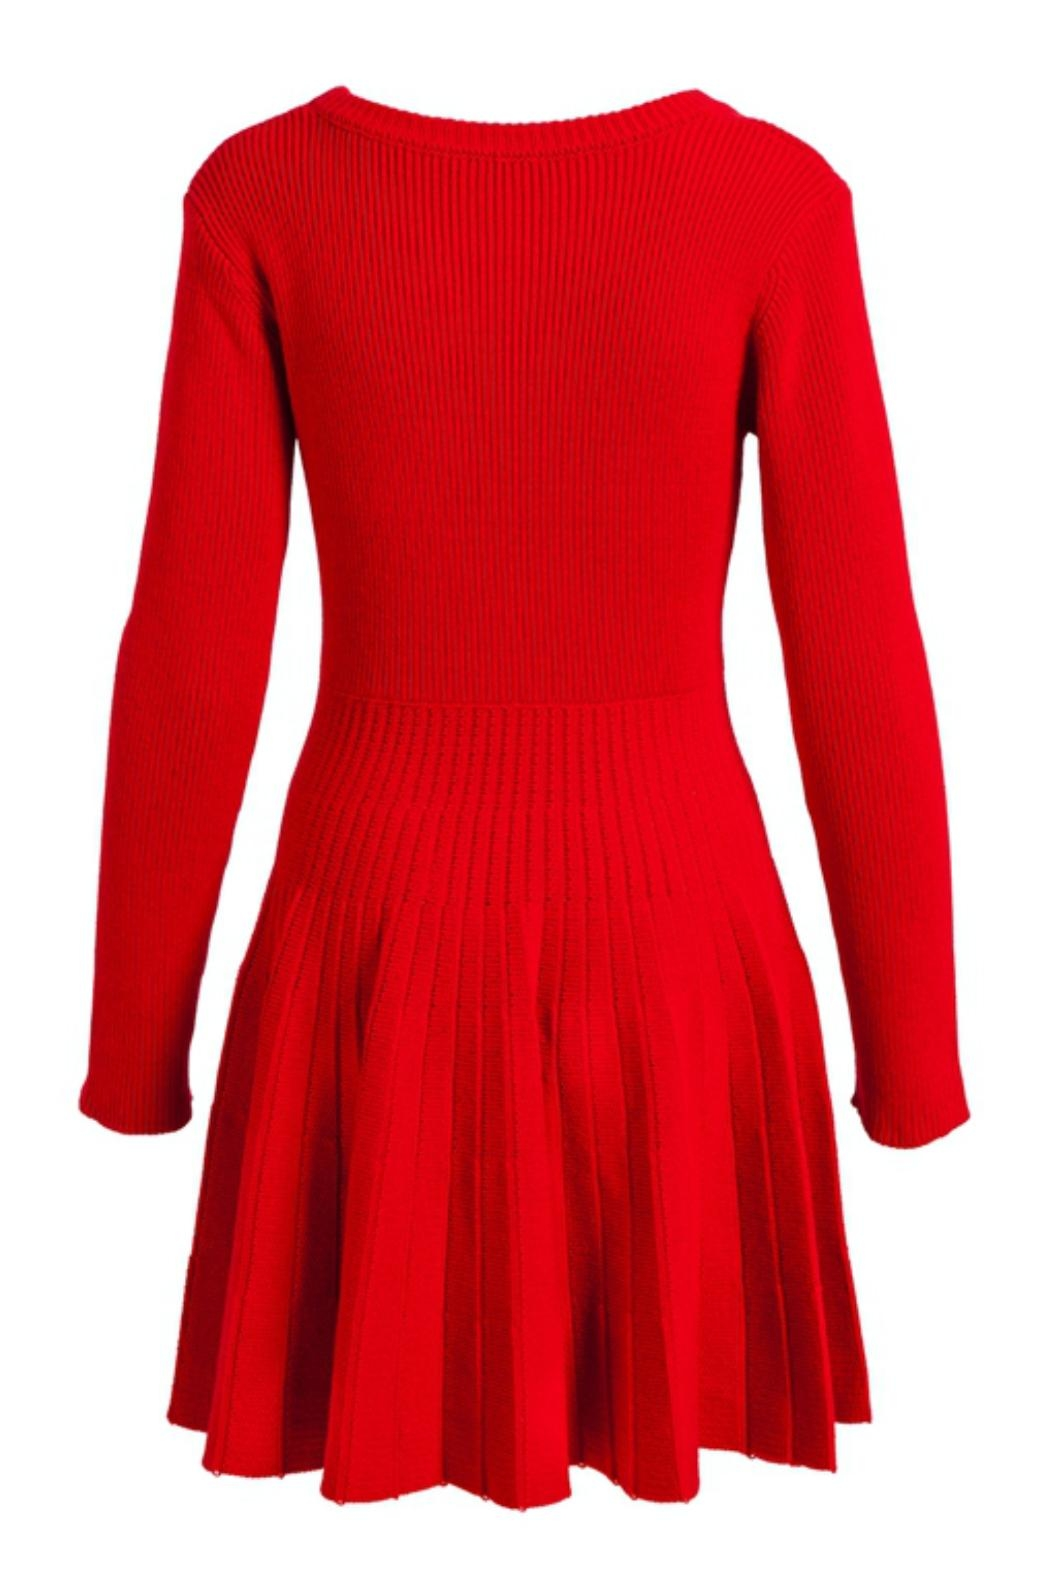 Evergreen Enterprises Fit-And-Flare Sweater Dress - Front Full Image